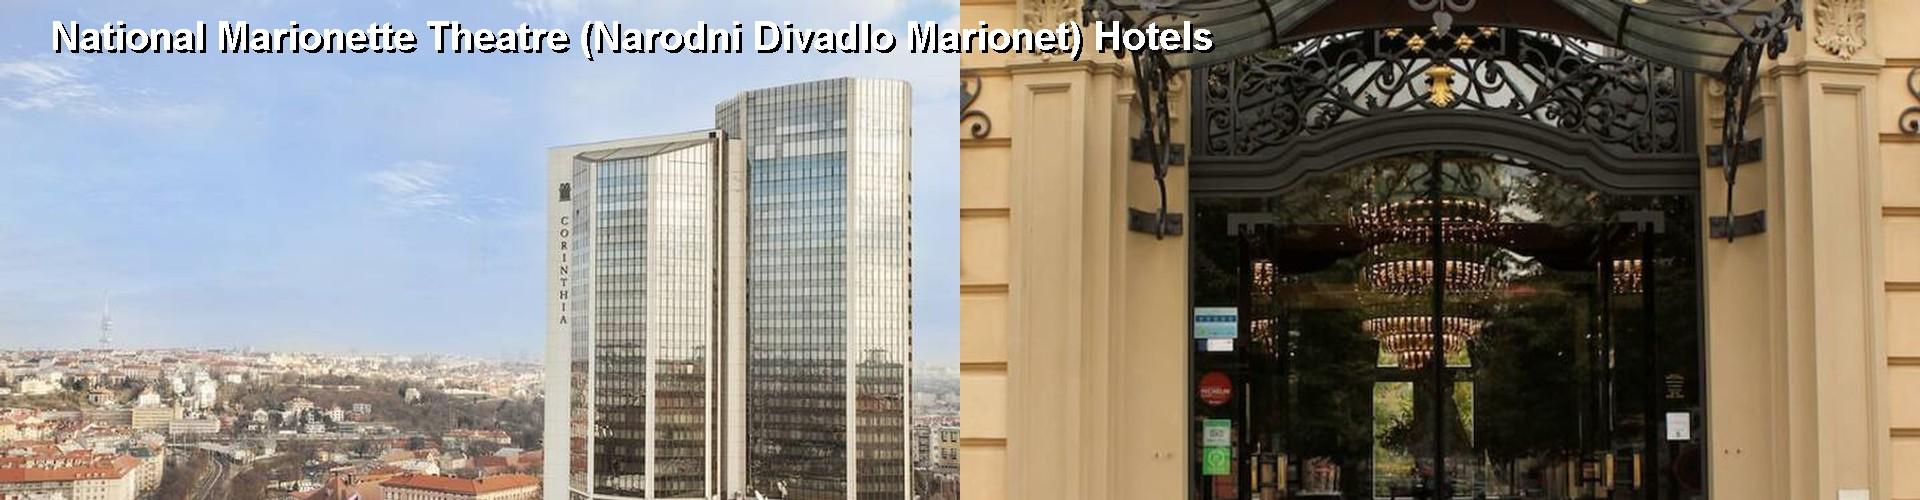 5 Best Hotels near National Marionette Theatre (Narodni Divadlo Marionet)